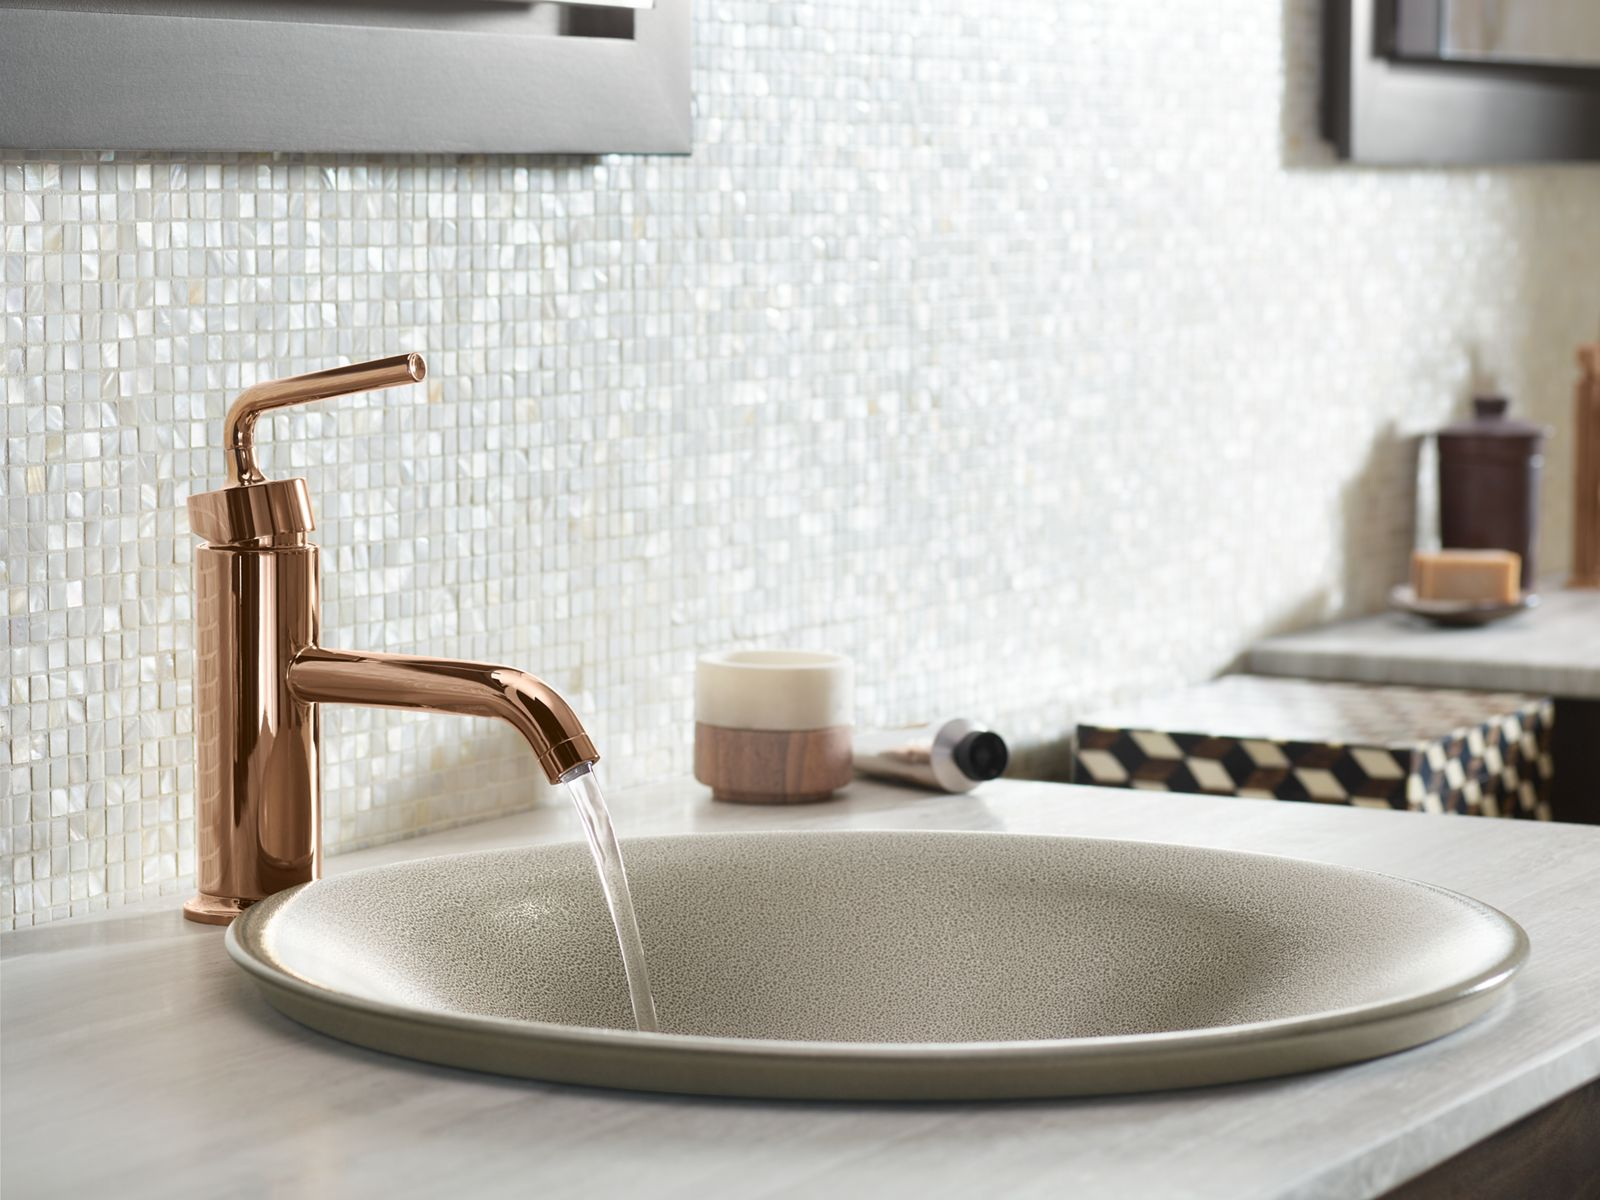 superb faucet finishes #10: Bathroom Faucet Finishes Gallery